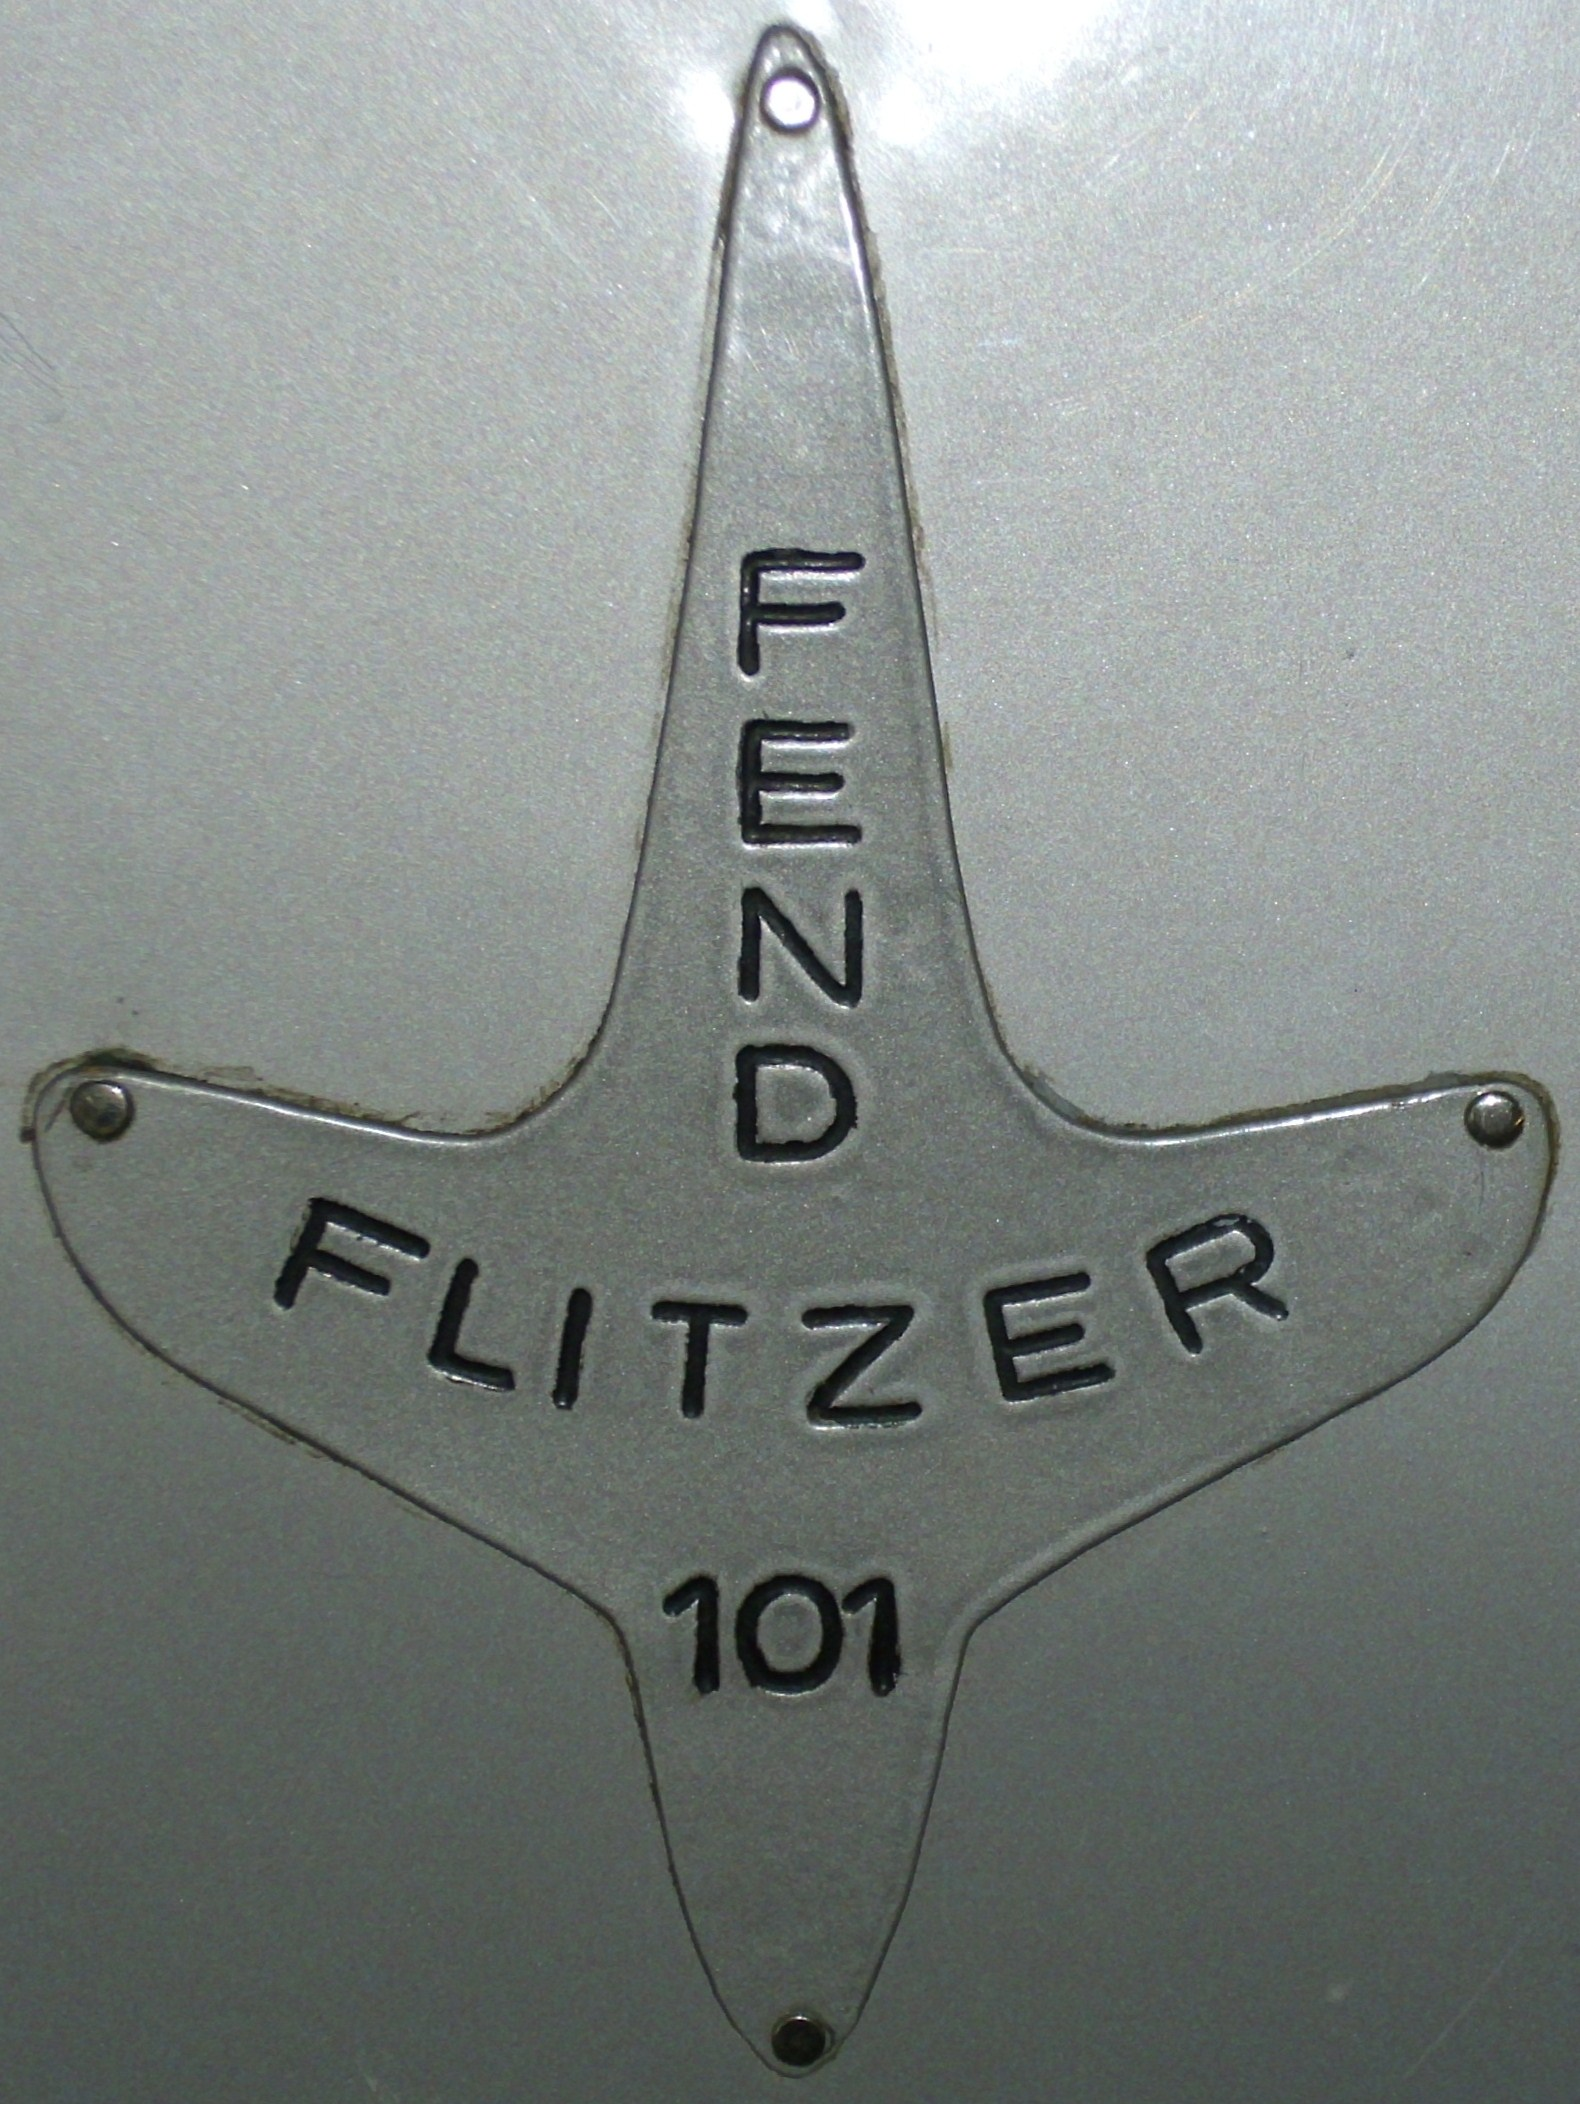 Fend flitzer photo - 3